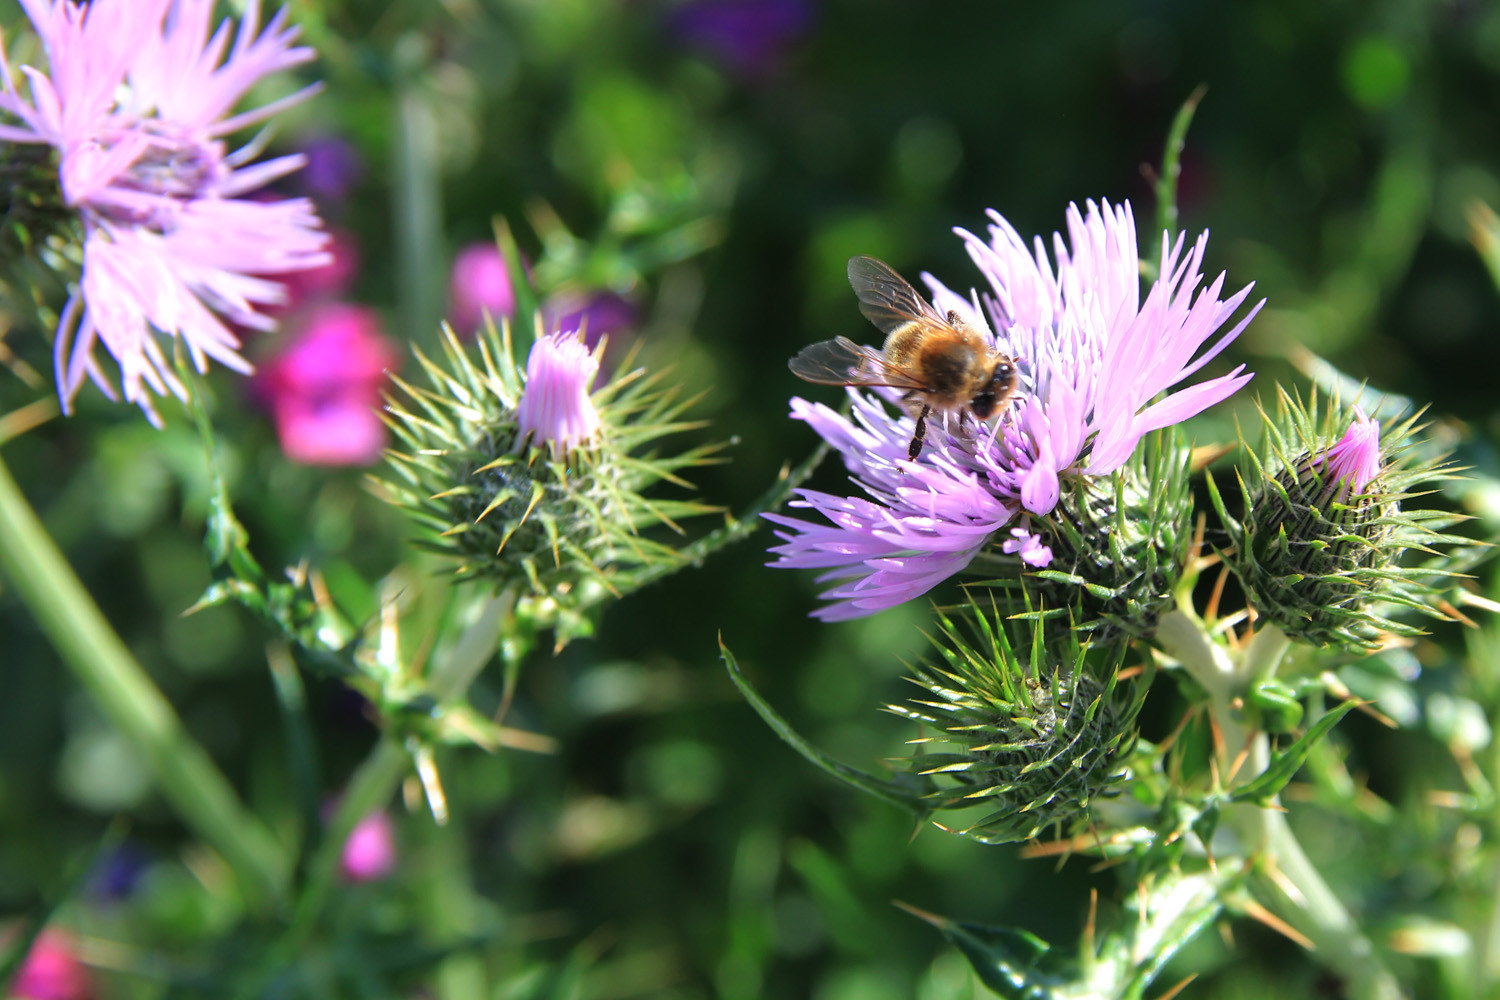 Thistle Flower Attracting Insects